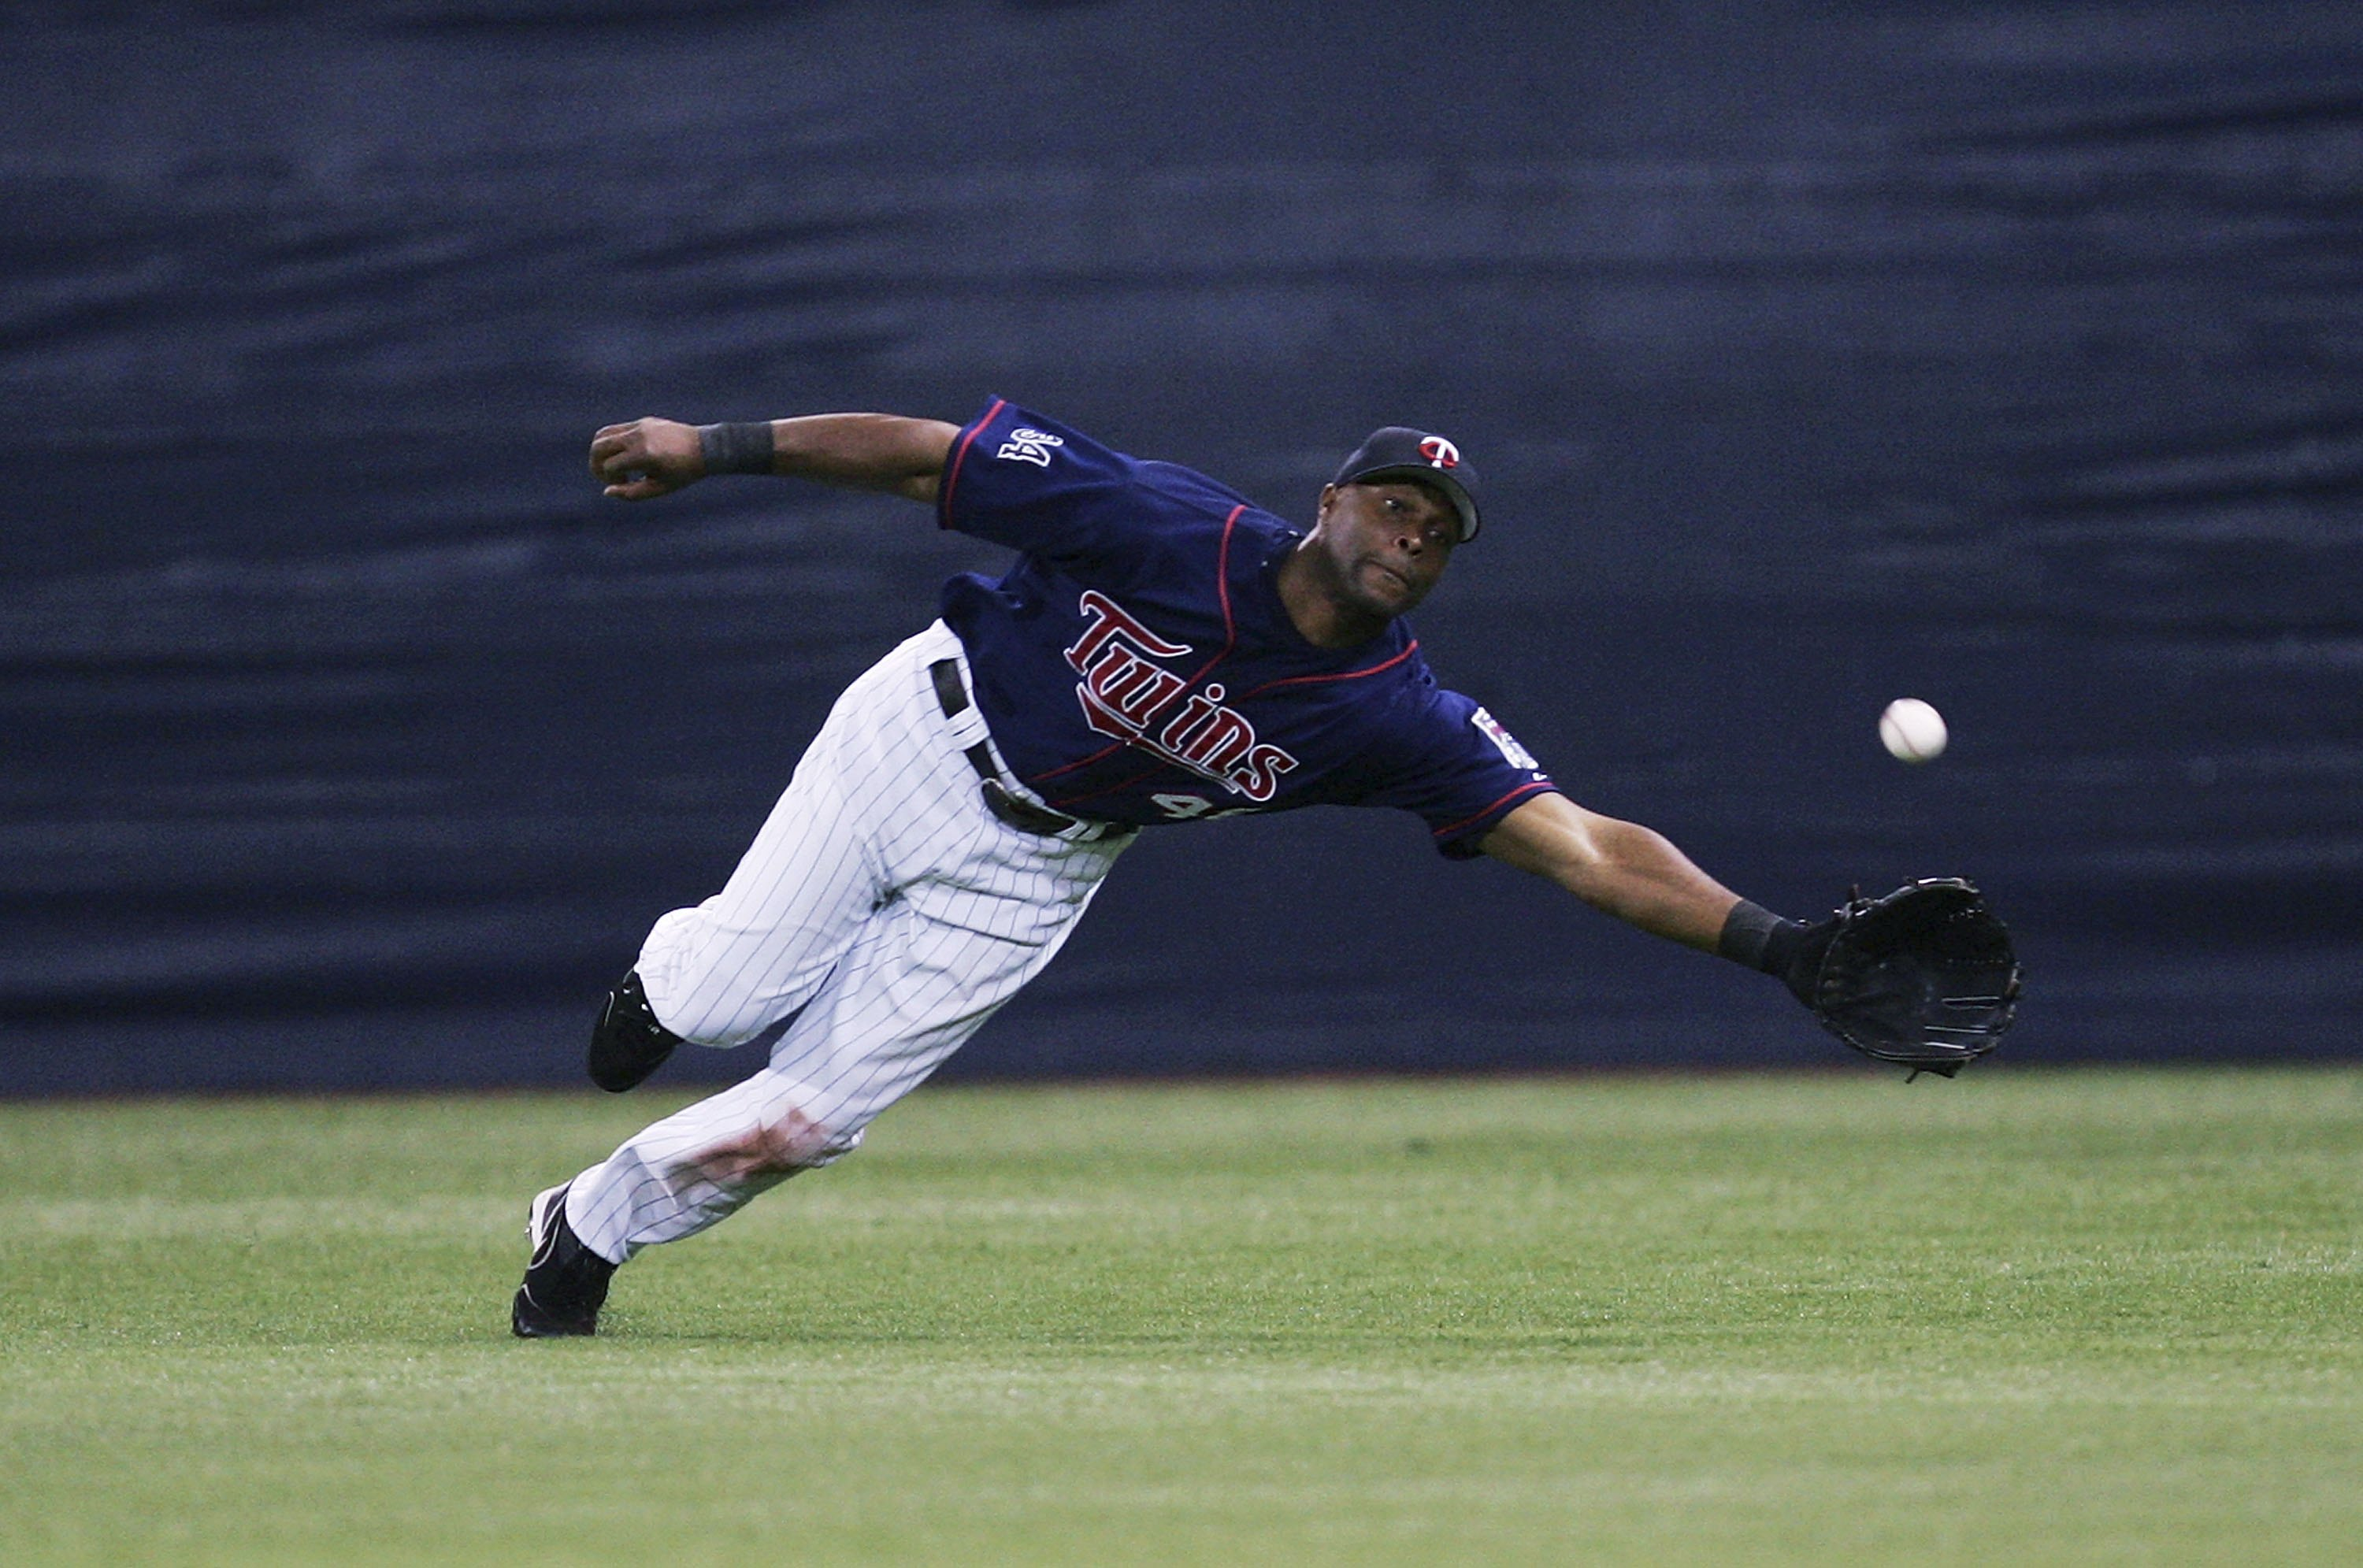 Incredible catches were routine while Torii Hunter roamed the Metrodome outfield.